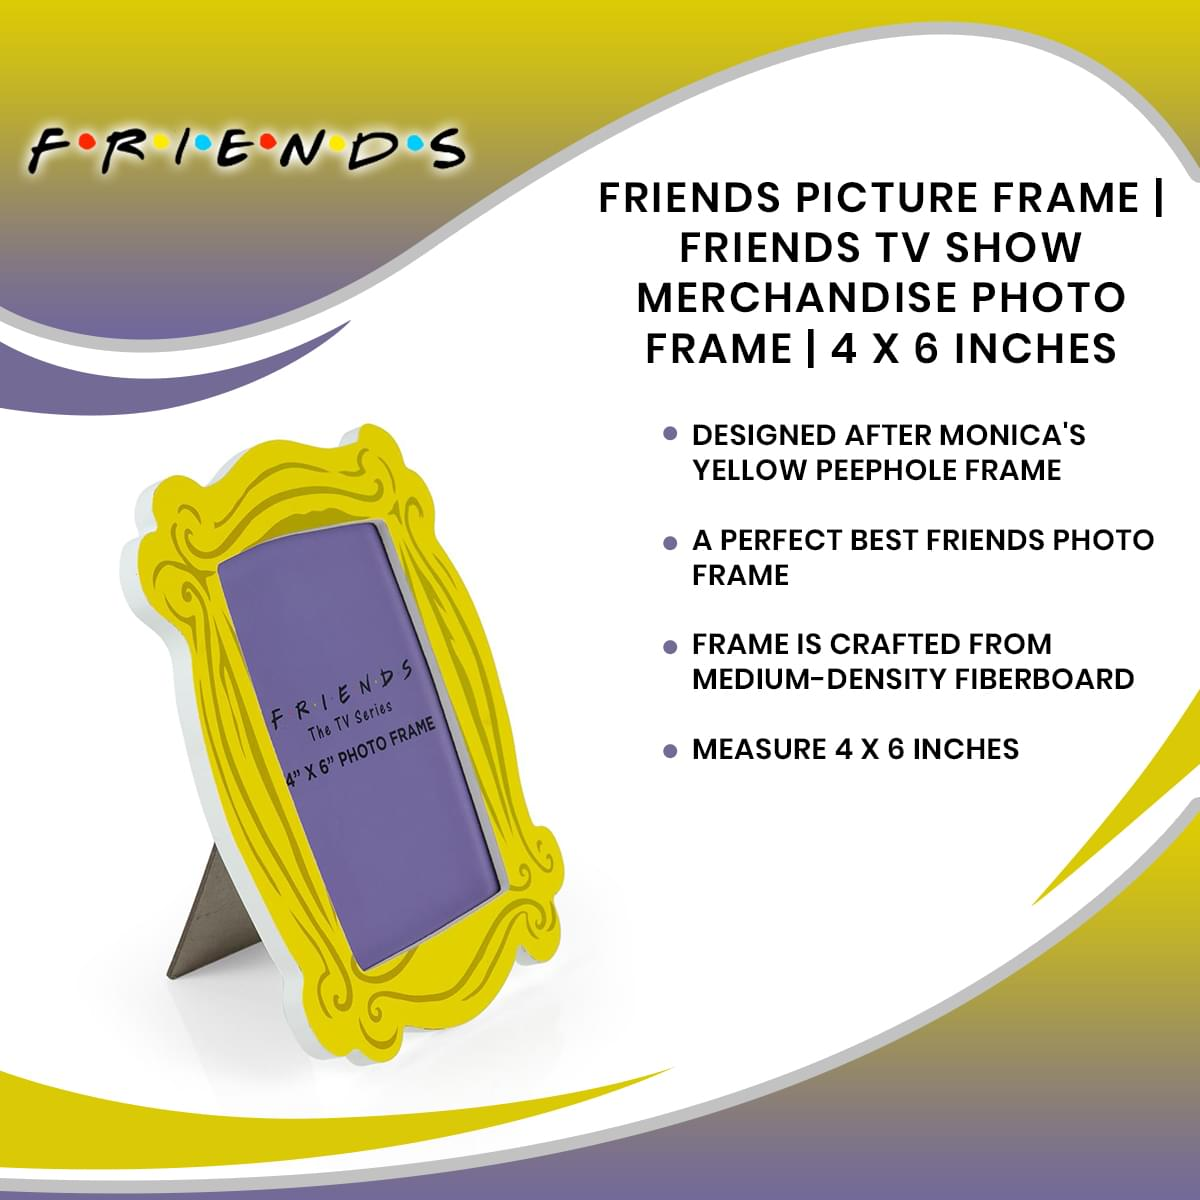 Friends Picture Frame | Friends TV Show Merchandise Photo Frame | 4 x 6 Inches